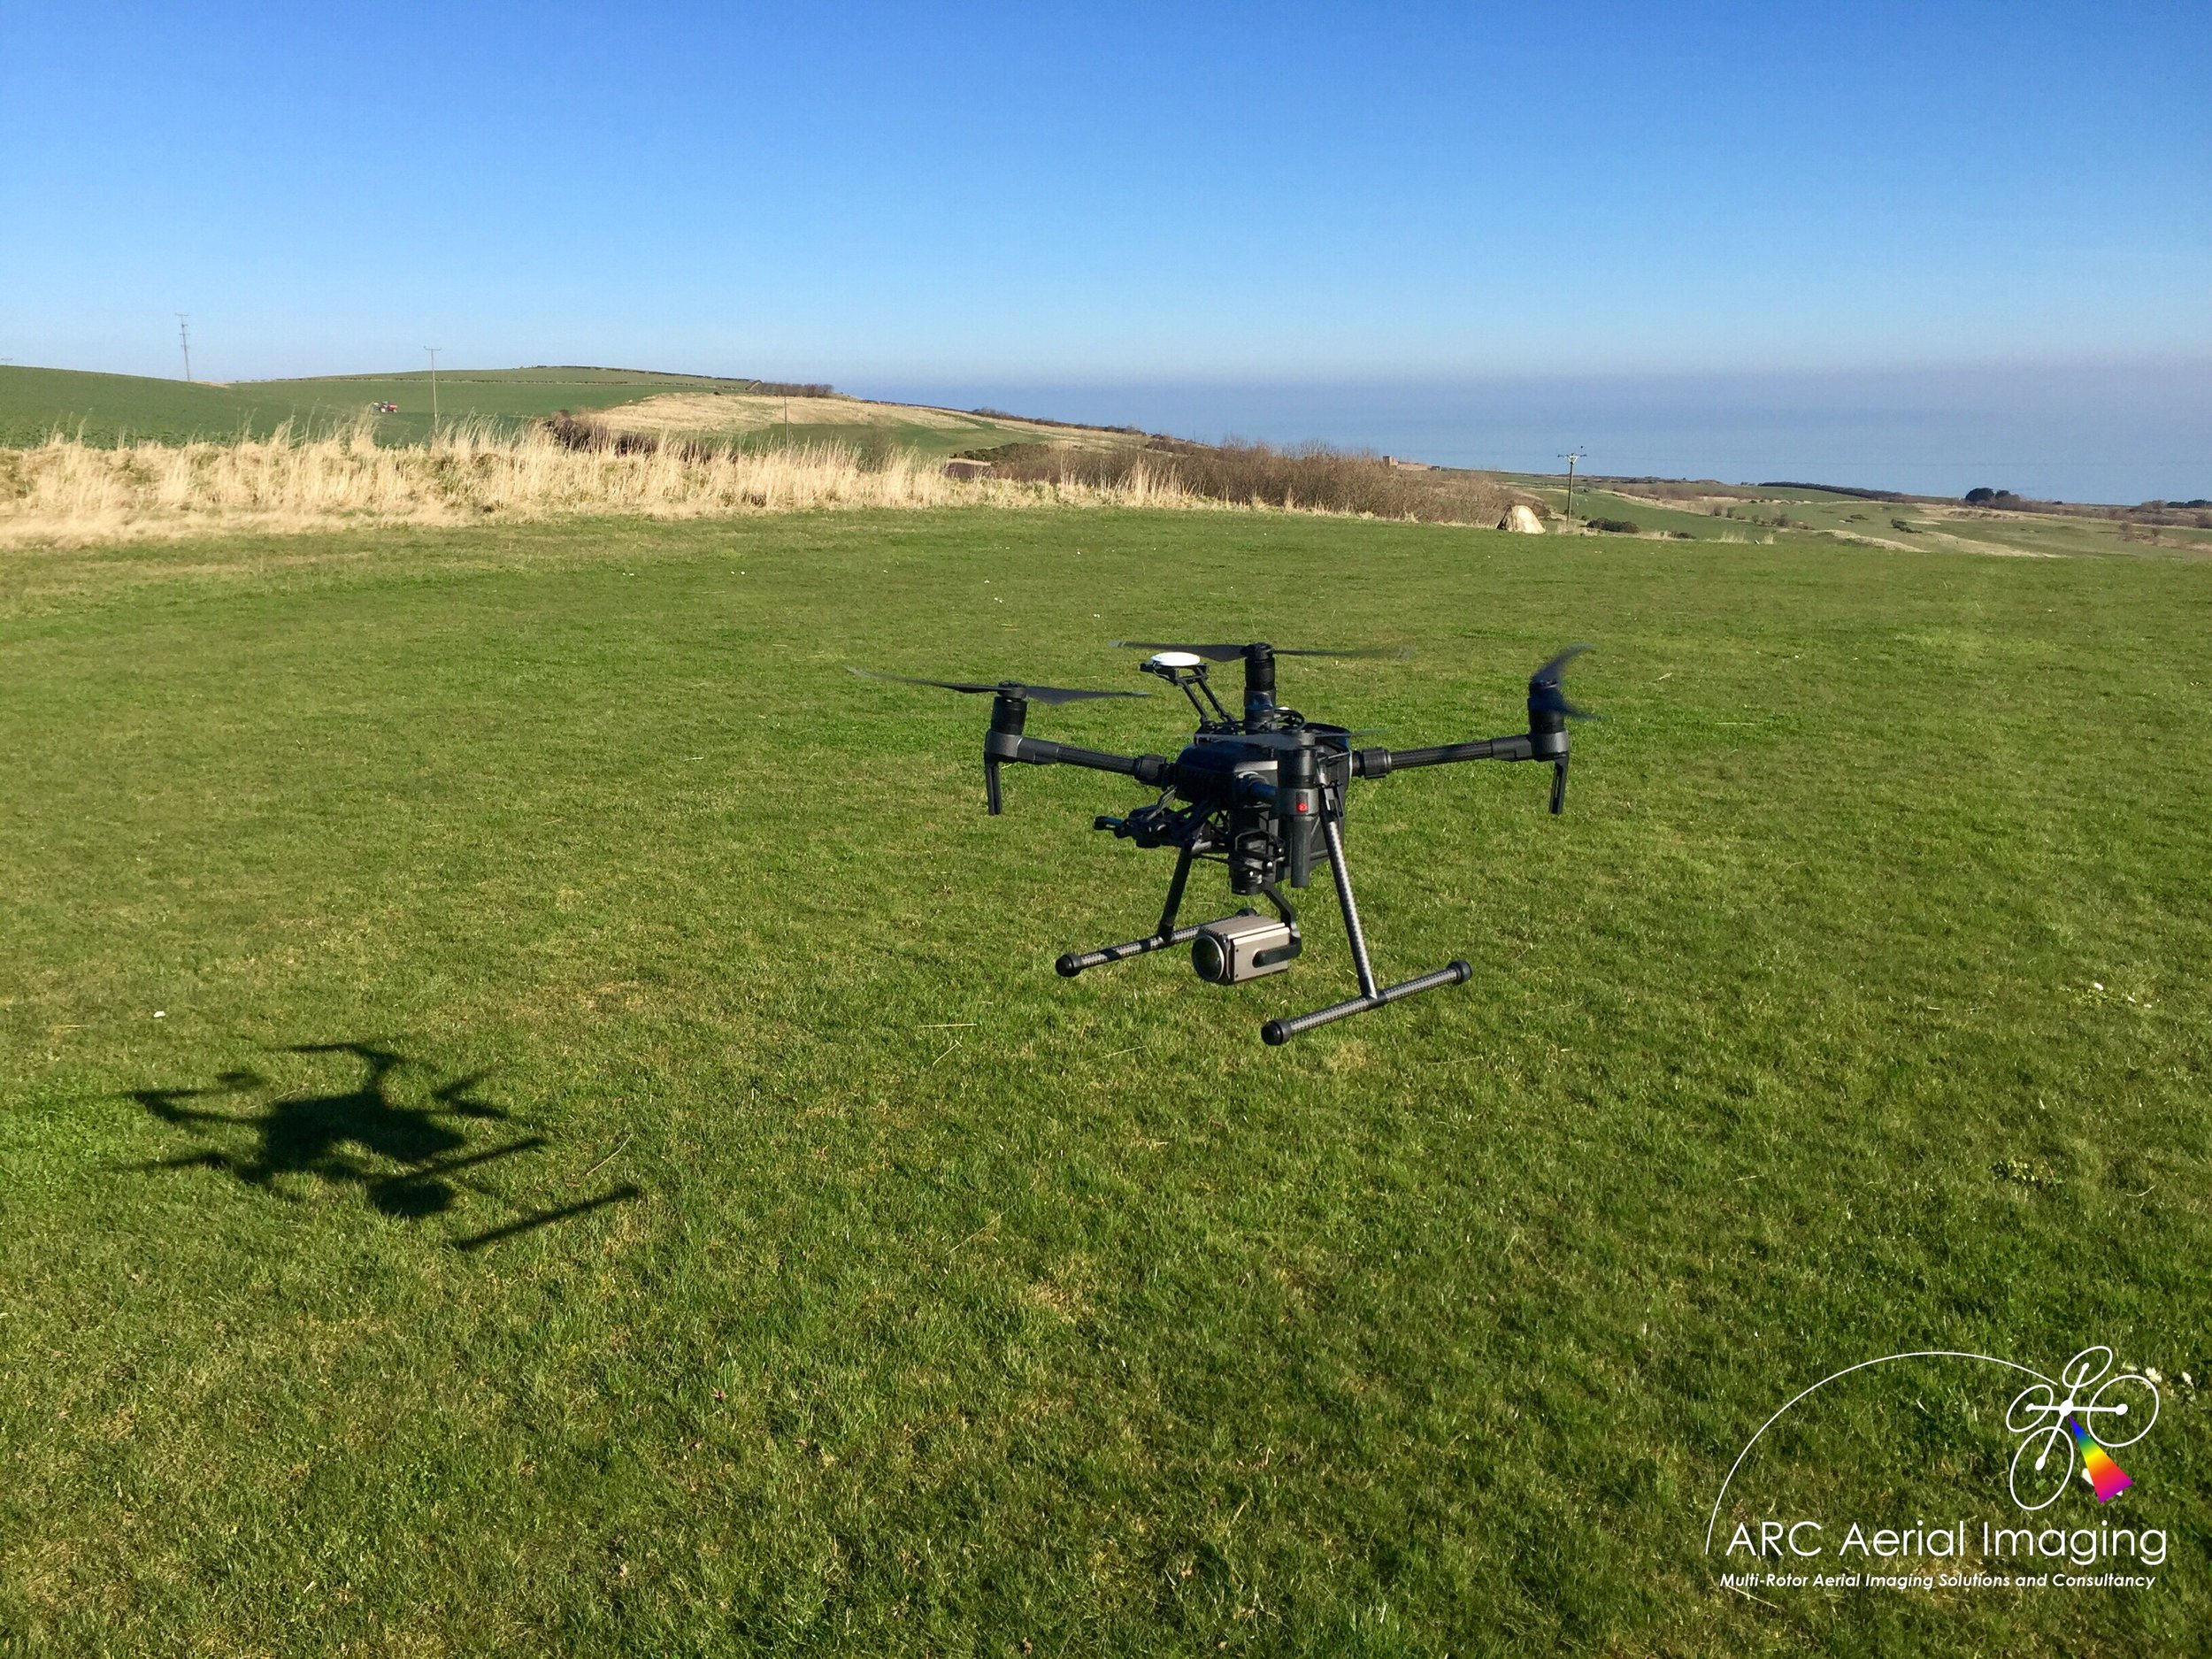 ARC Aerial Imaging-Matrice210_1.jpg